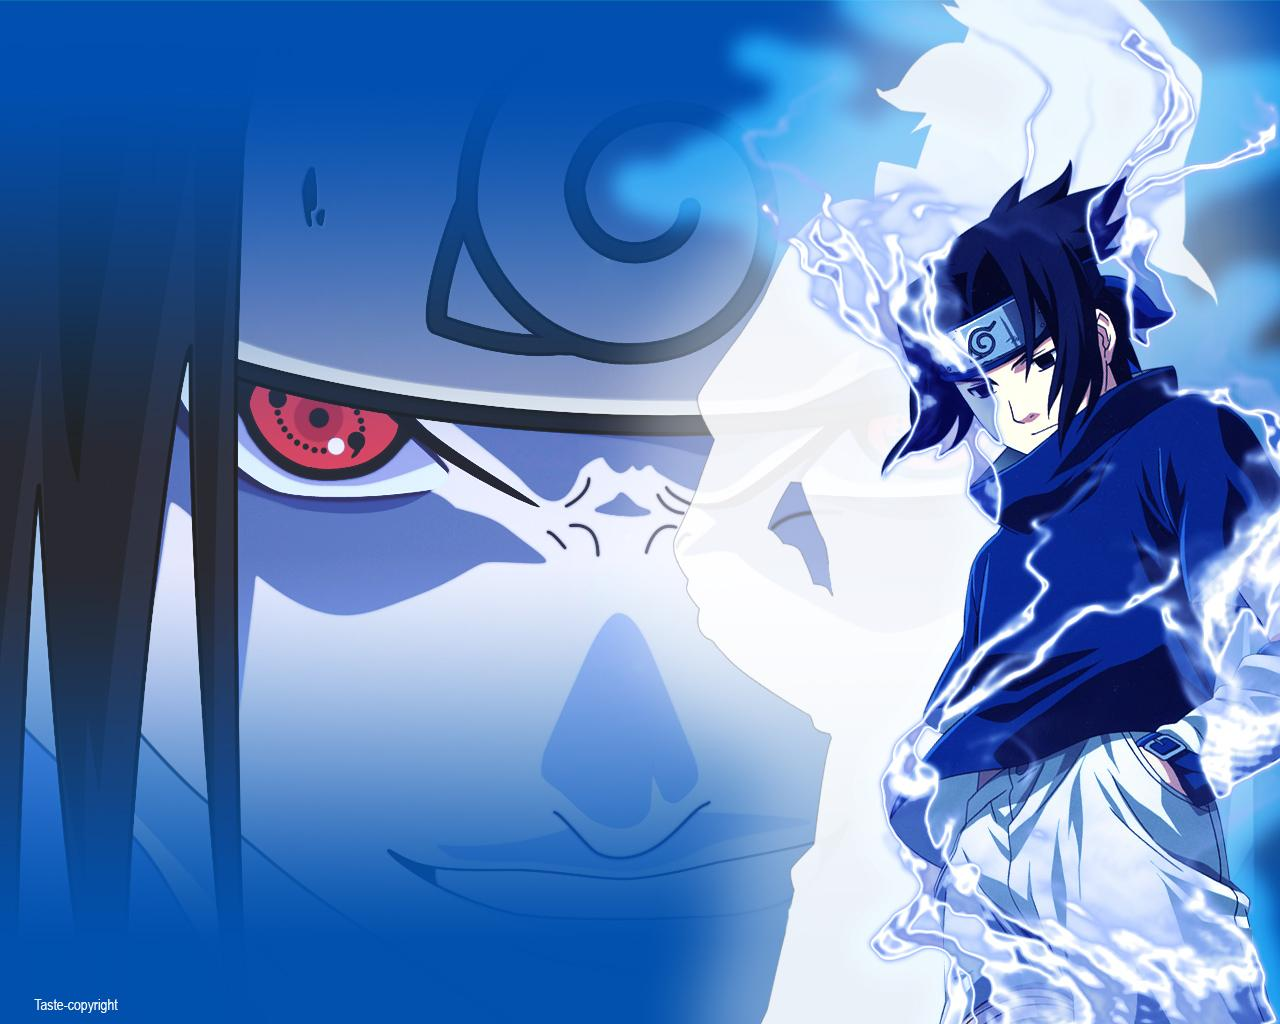 Sasuke Wallpaper Naruto Wallpaper 60339 Fanpop Fanclubs Sasuke Wallpaper Naruto Wallpaper 60339 Fanpop Fanclubs